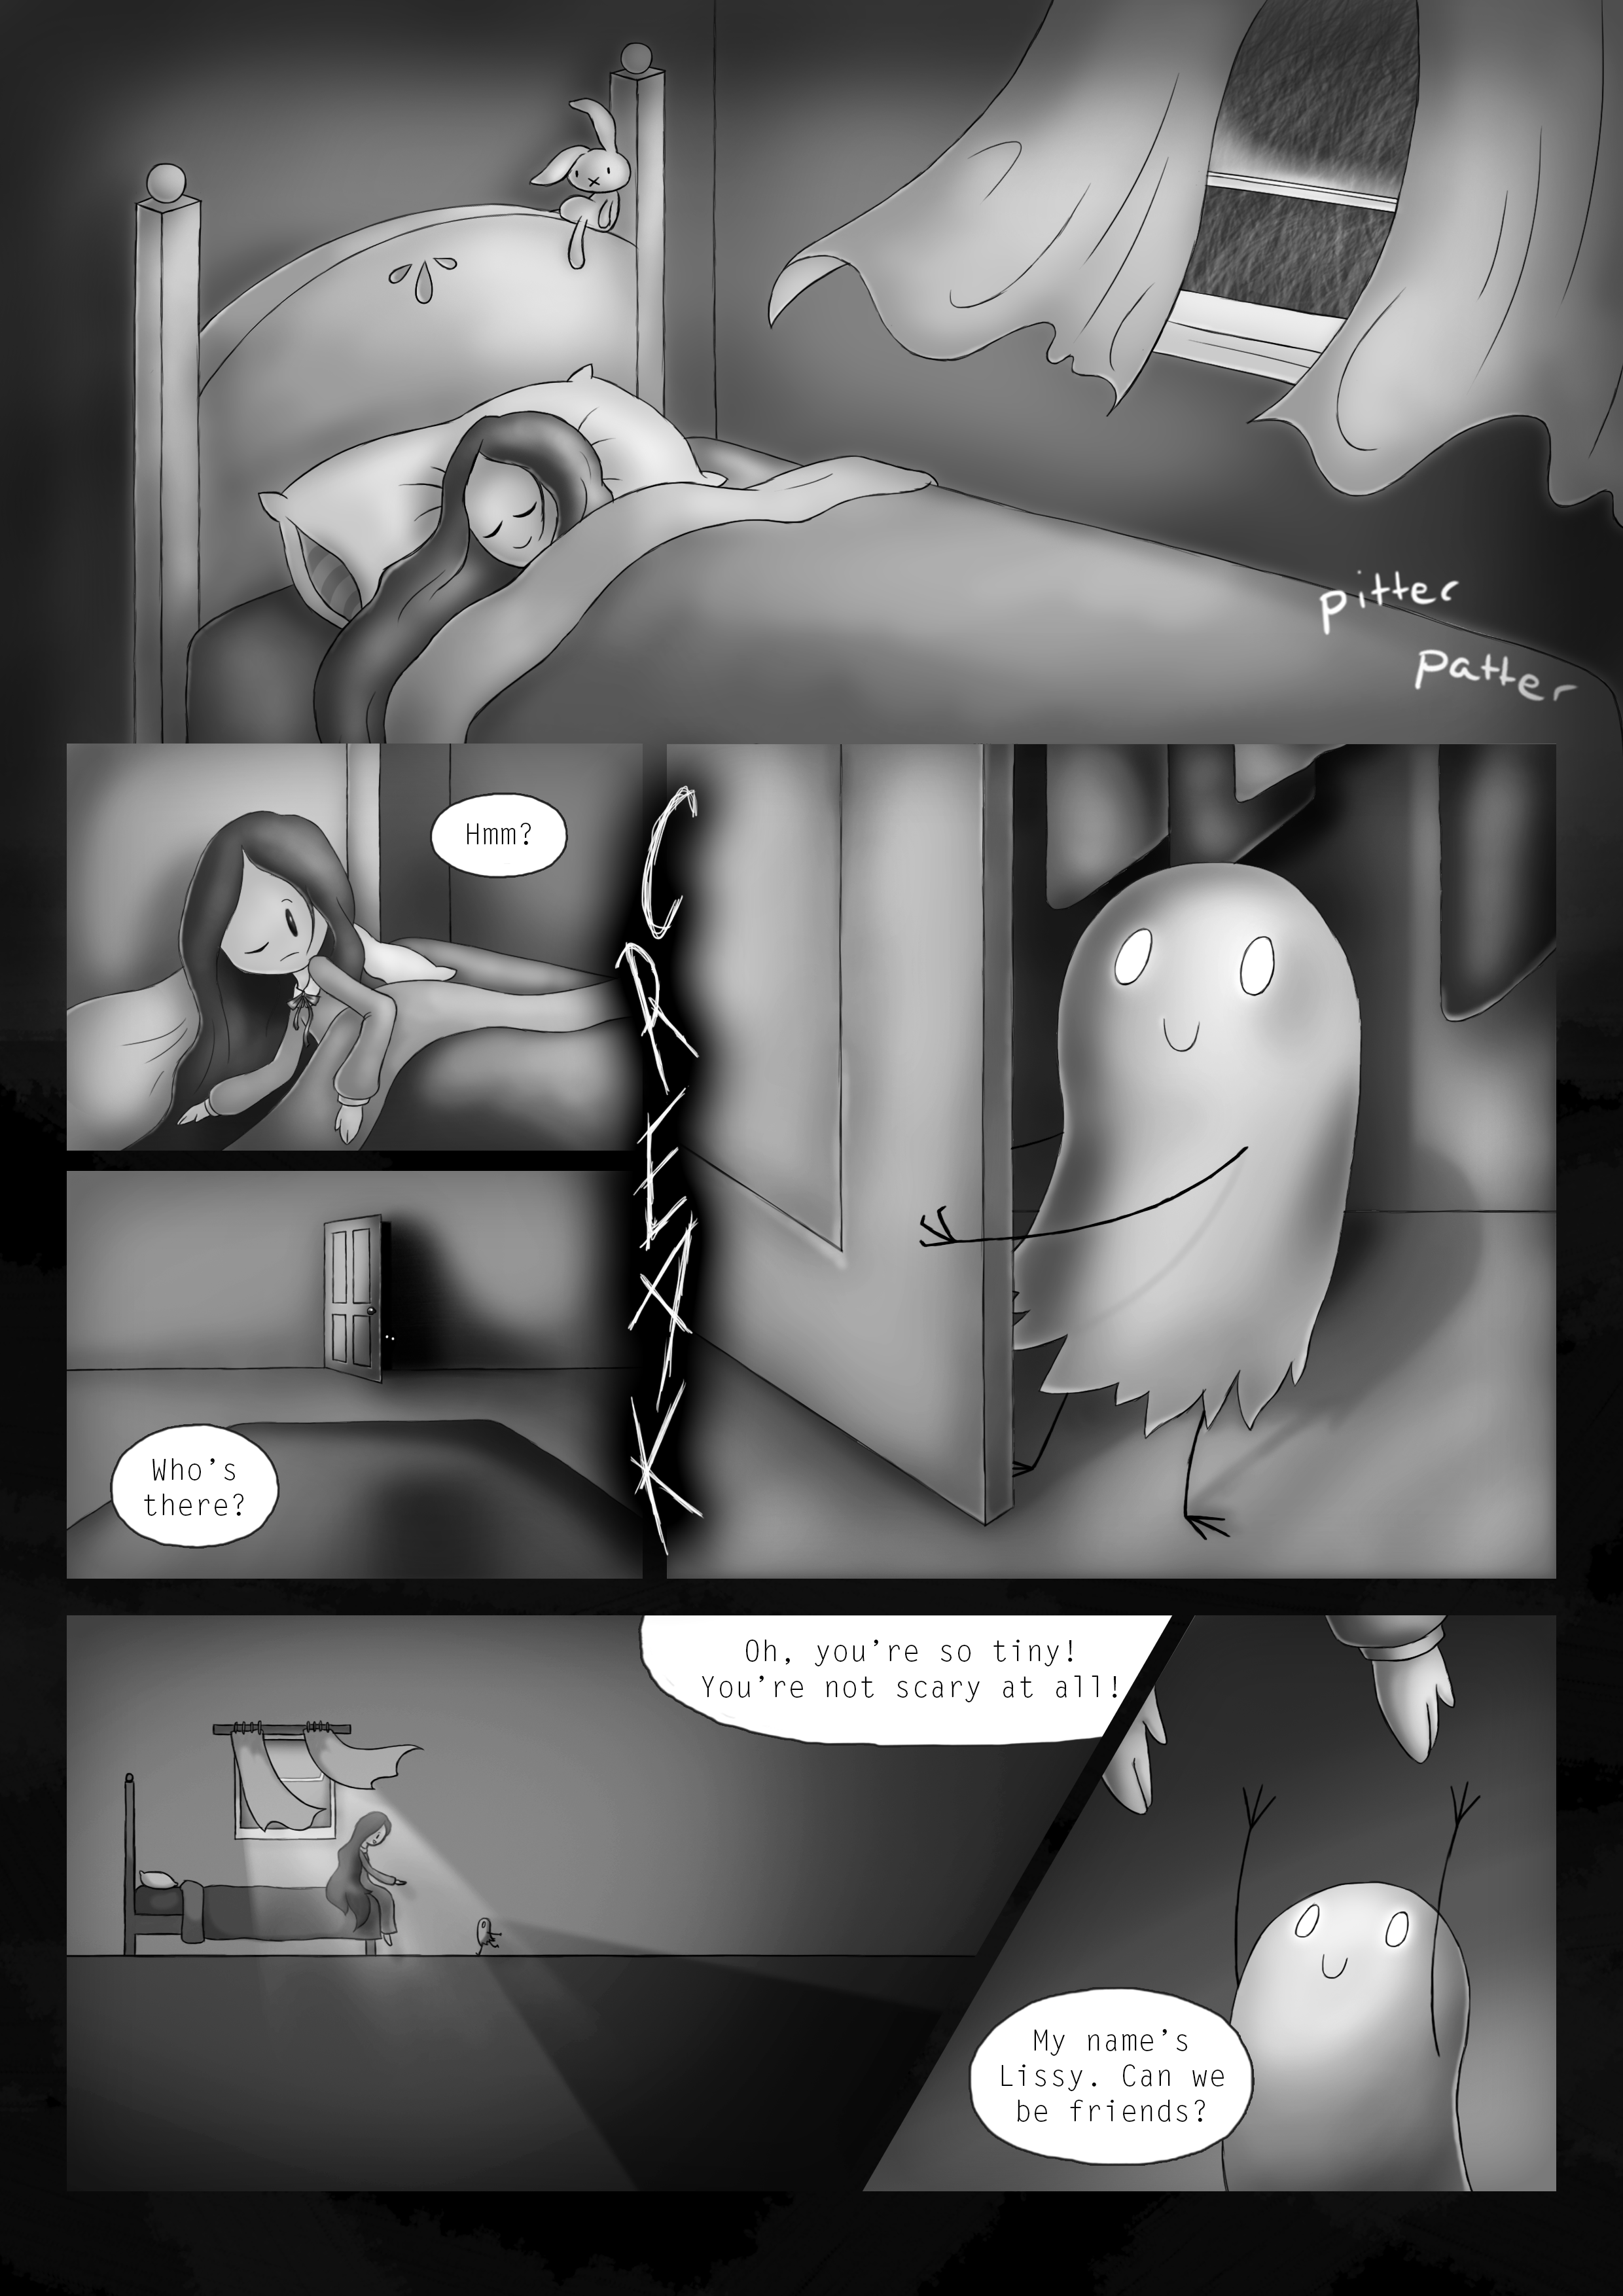 """Best Friend"" - Page 1"